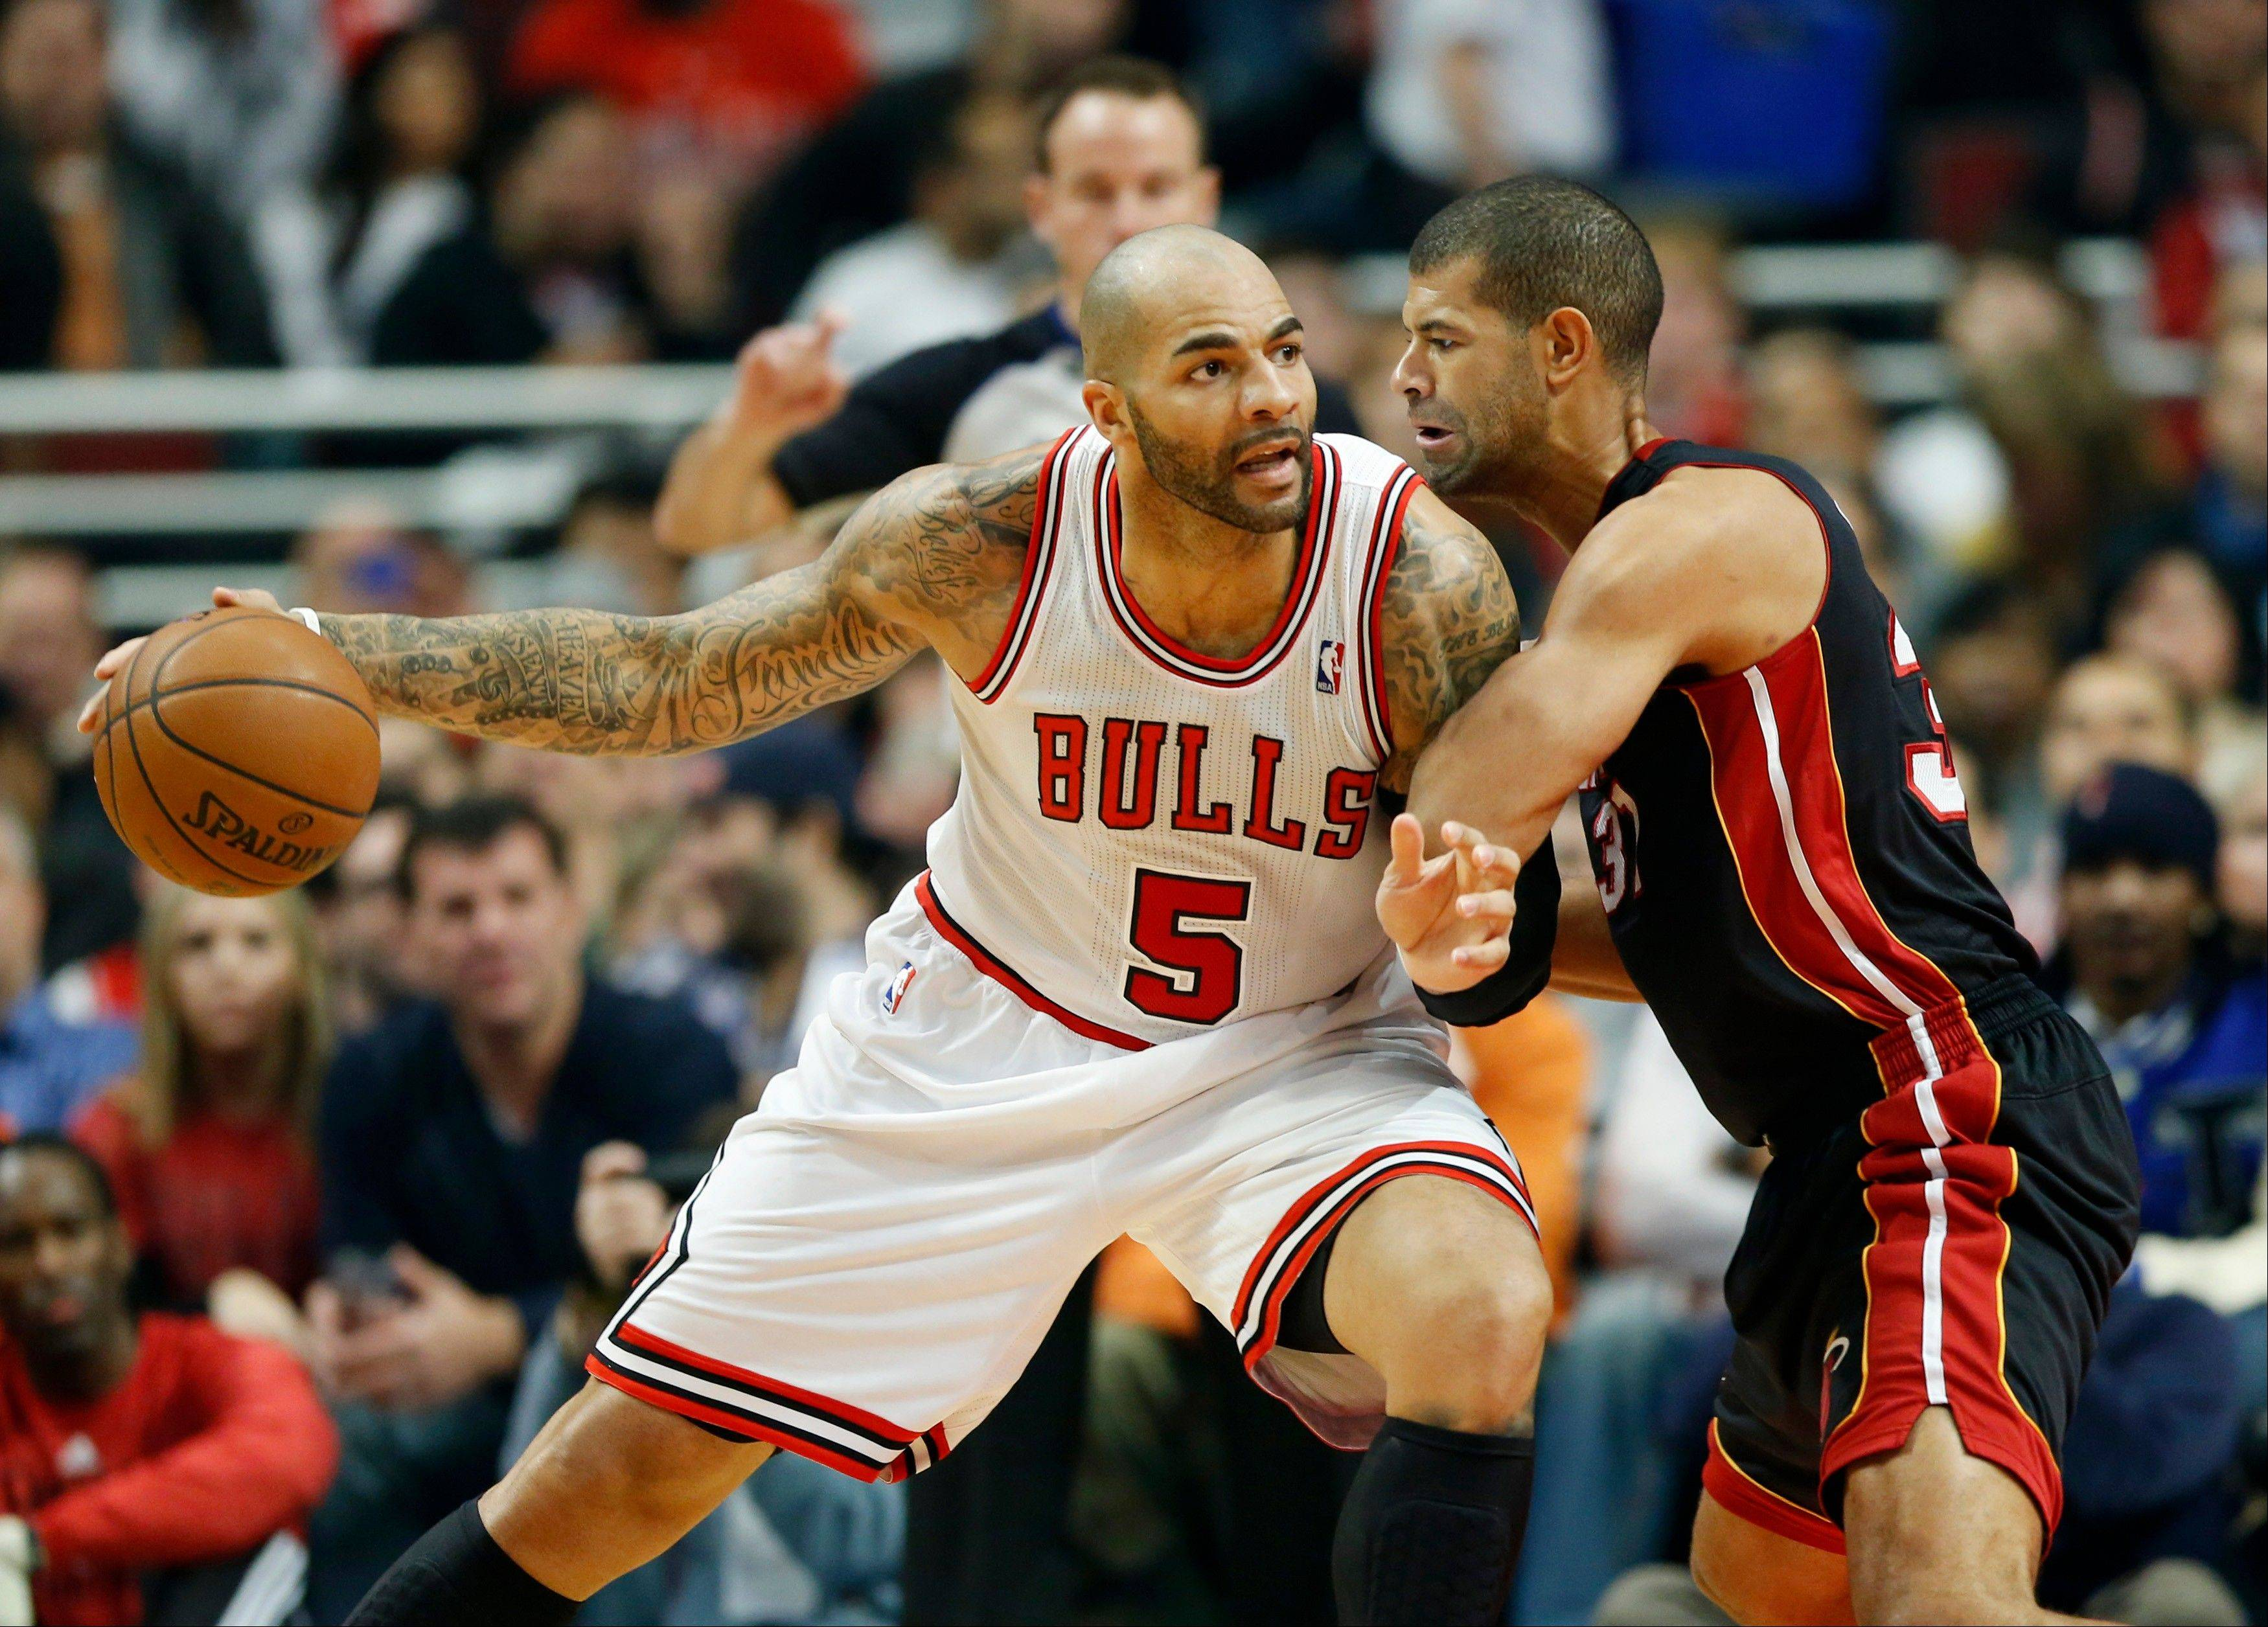 Associated Press Bulls forward Carlos Boozer, left, looks for an opening against Miami Heat forward Shane Battier, right, during the first half of an NBA basketball game at the United Center Thursday.